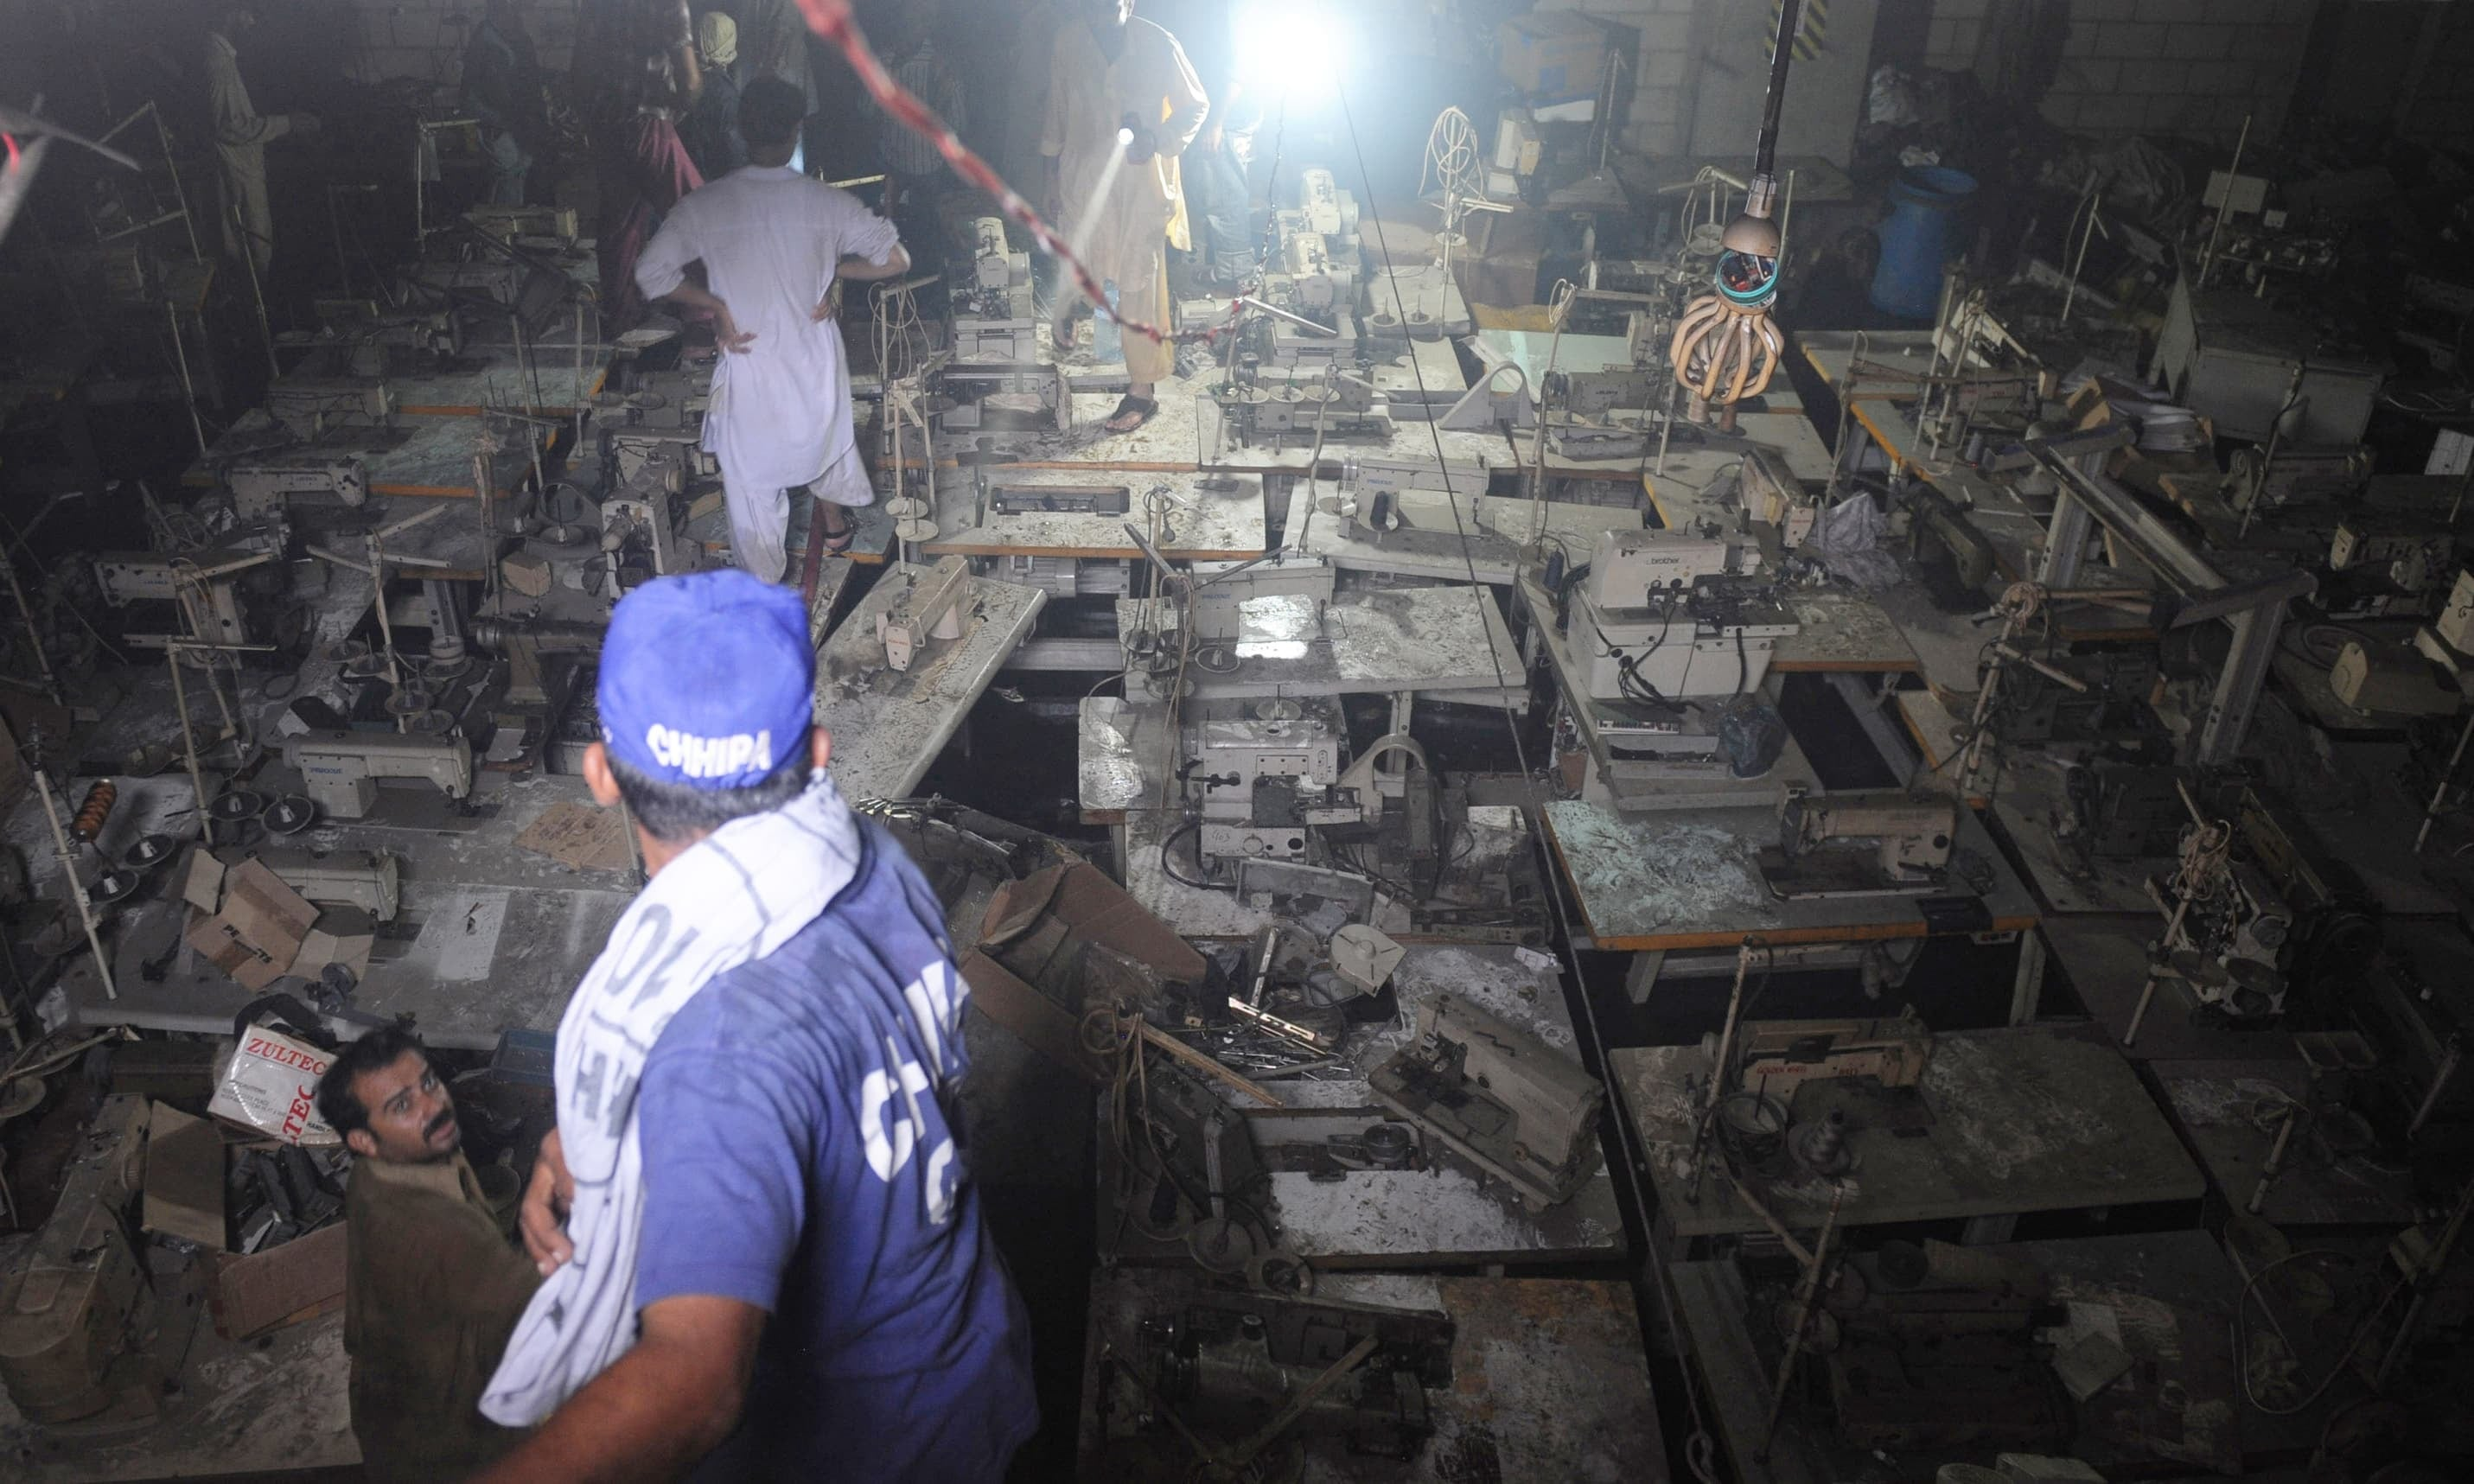 Rescue workers at the garment factory following the fire | AFP